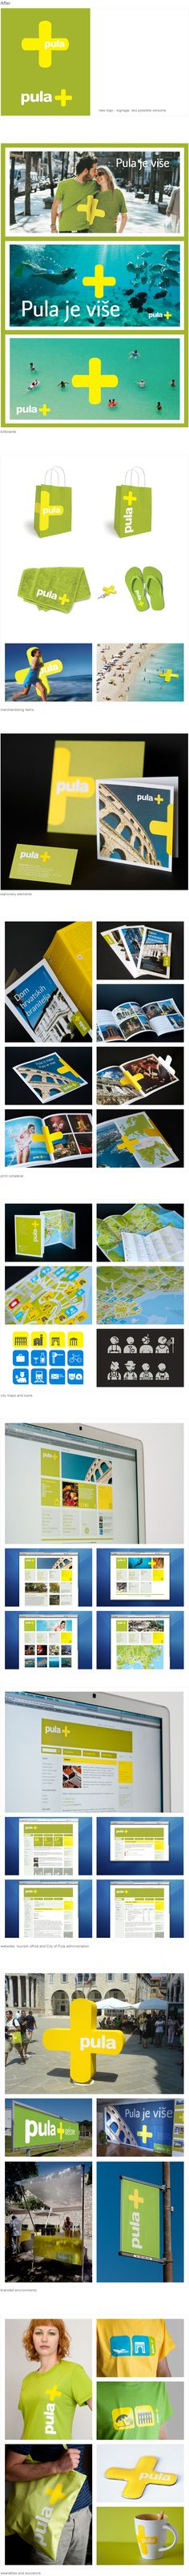 Branding for Pula, Croatia, by Parabureau 2010 #packaging #branding #marketing PD